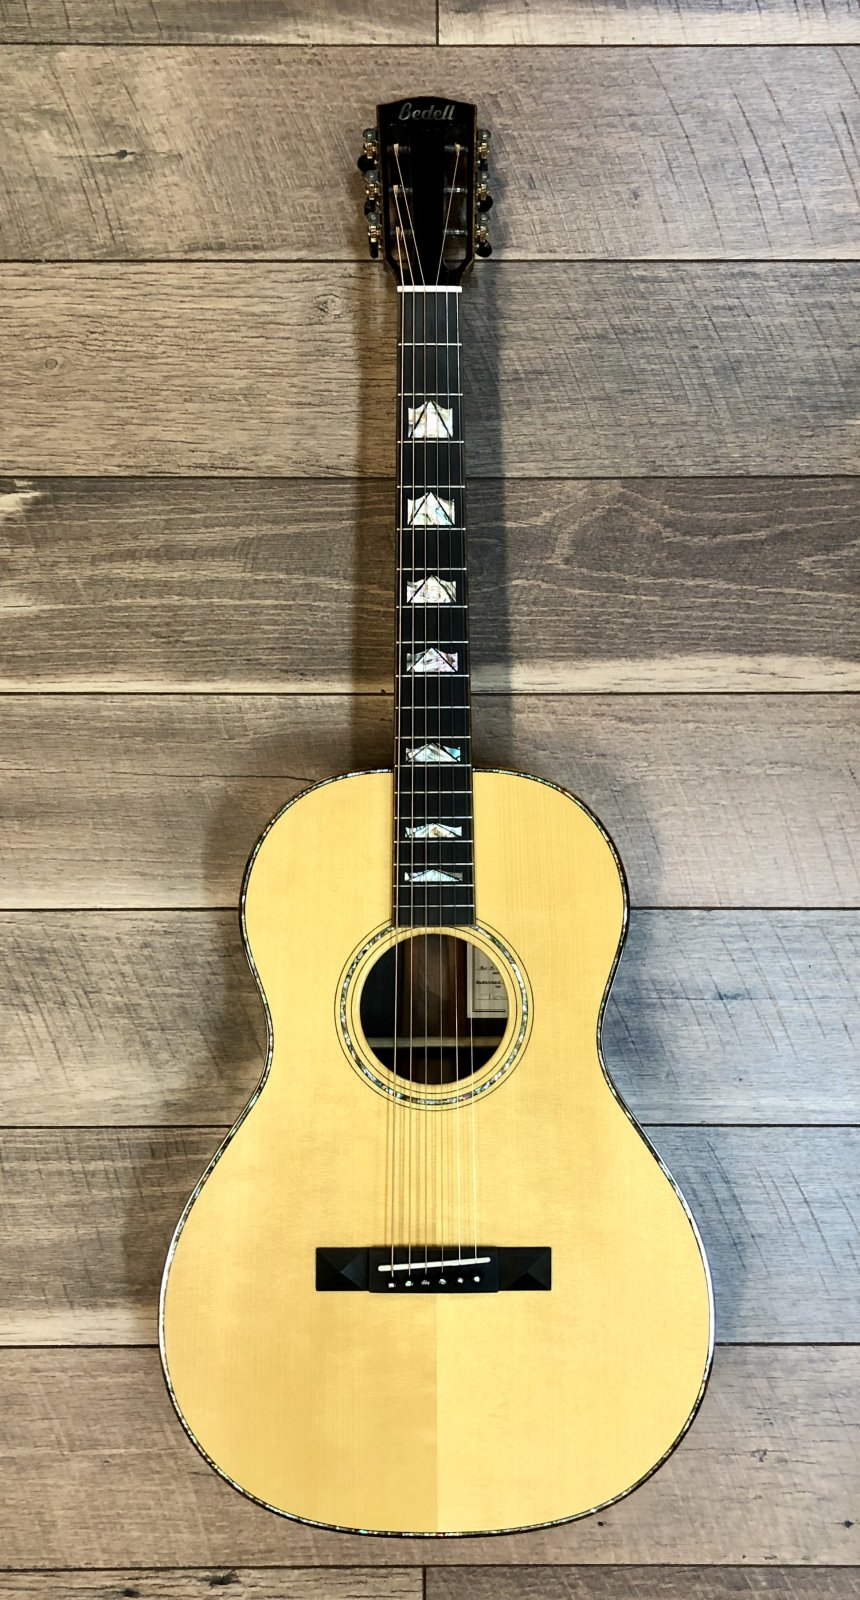 Bedell Revere Series Parlor Guitar